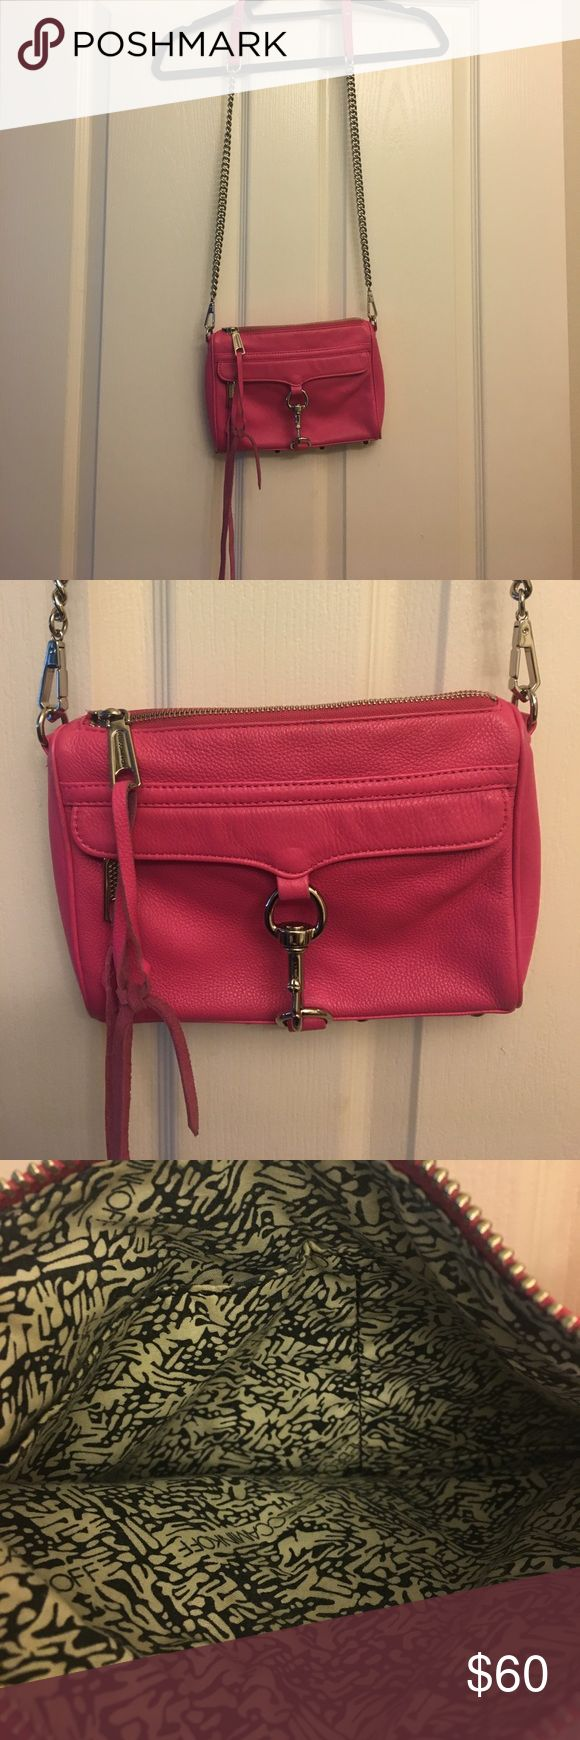 Rebecca minkoff mini Mac pebbles leather pink Pink with silver hardware mini Mac in pebbles leather - comes with dust bag Rebecca Minkoff Bags Crossbody Bags